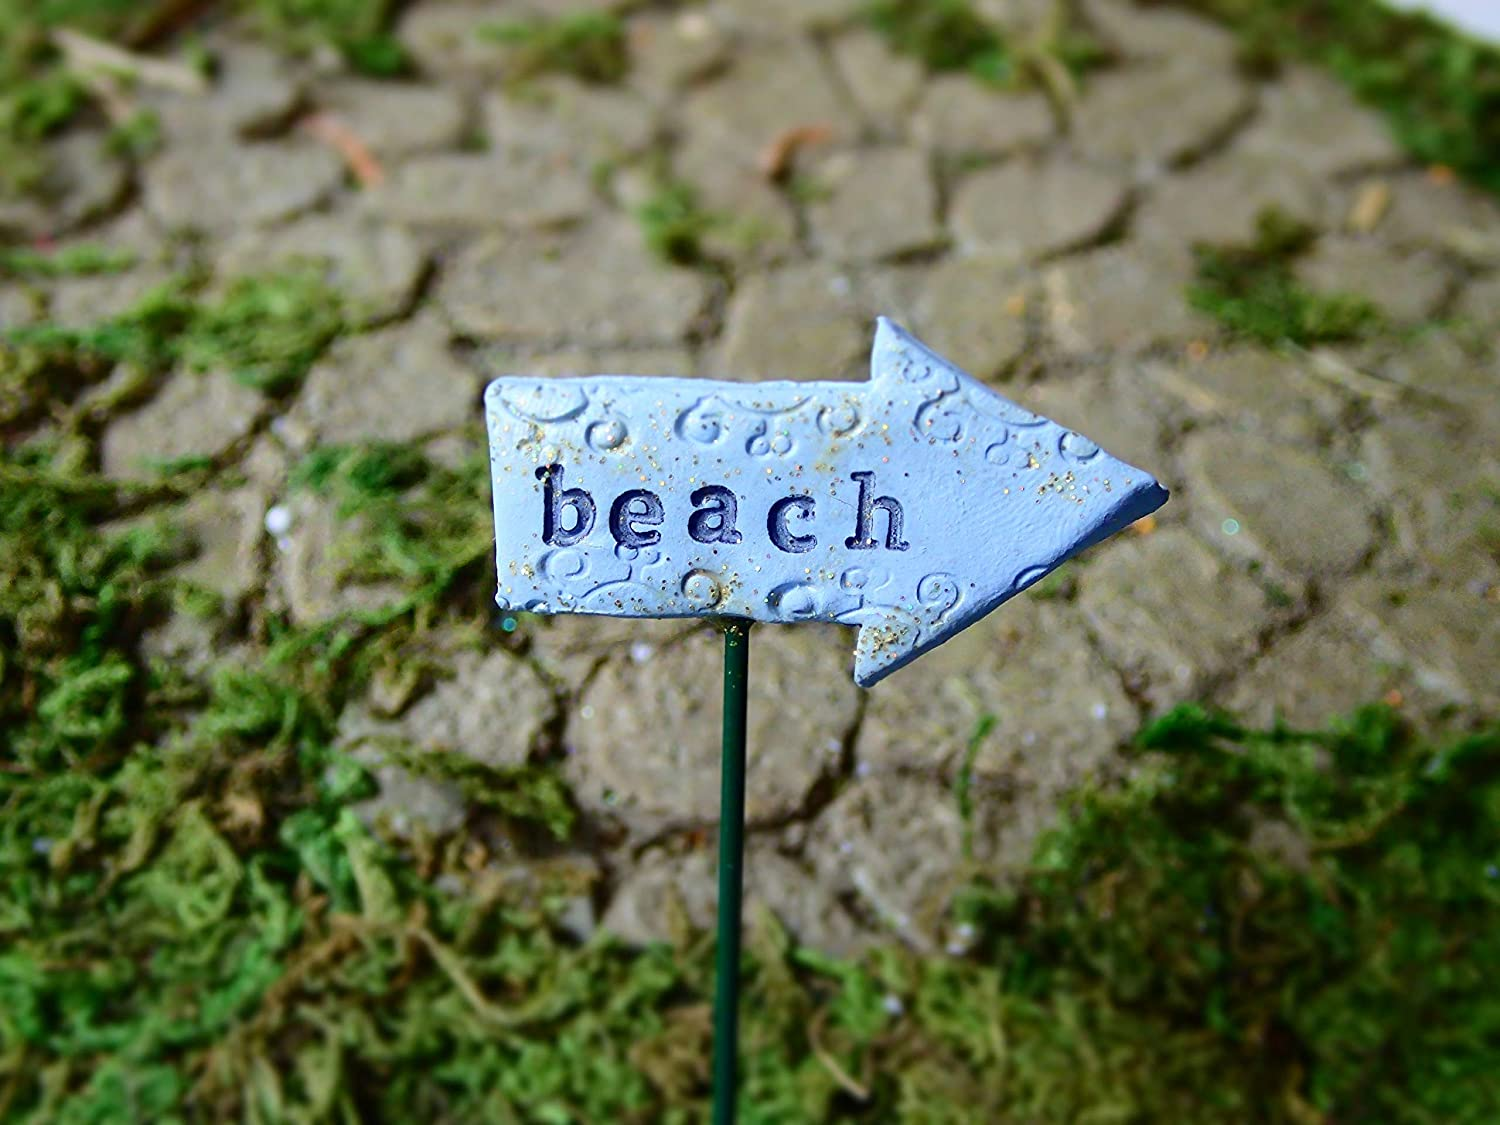 Fairy Garden Beach Sign, Miniature Lake & Ocean Decorations, Mini Accessory for Terrarium or Dollhouse